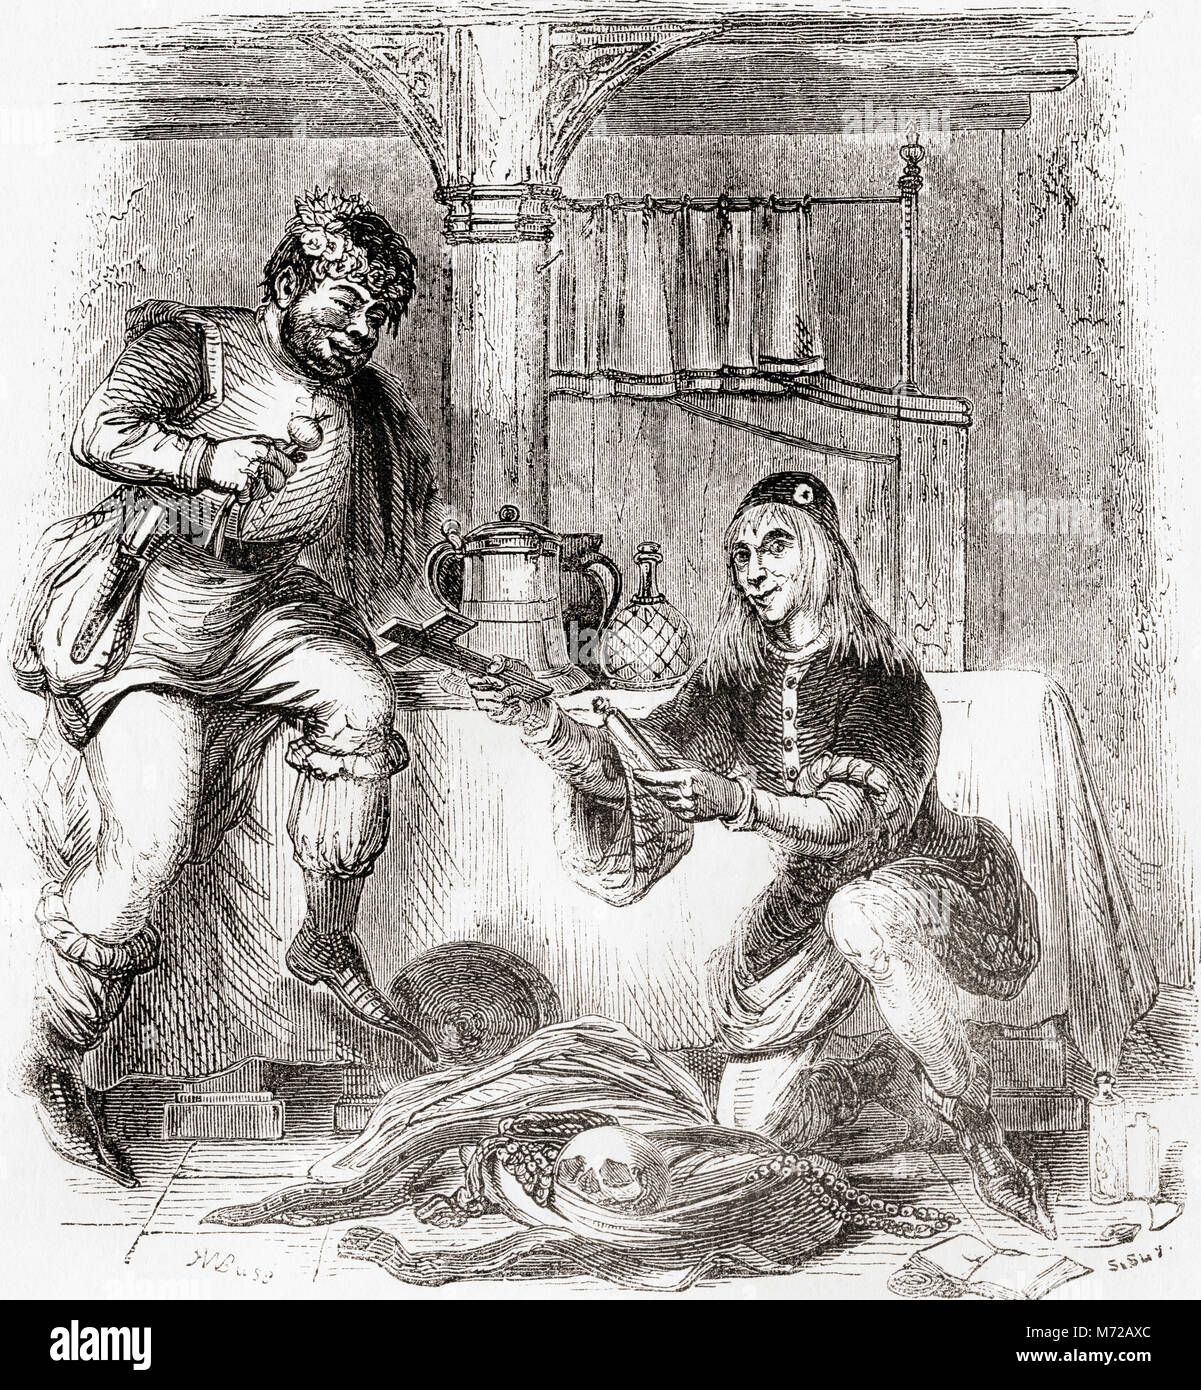 Sumpnour and Pardoner.  From Old England: A Pictorial Museum, published 1847. - Stock Image